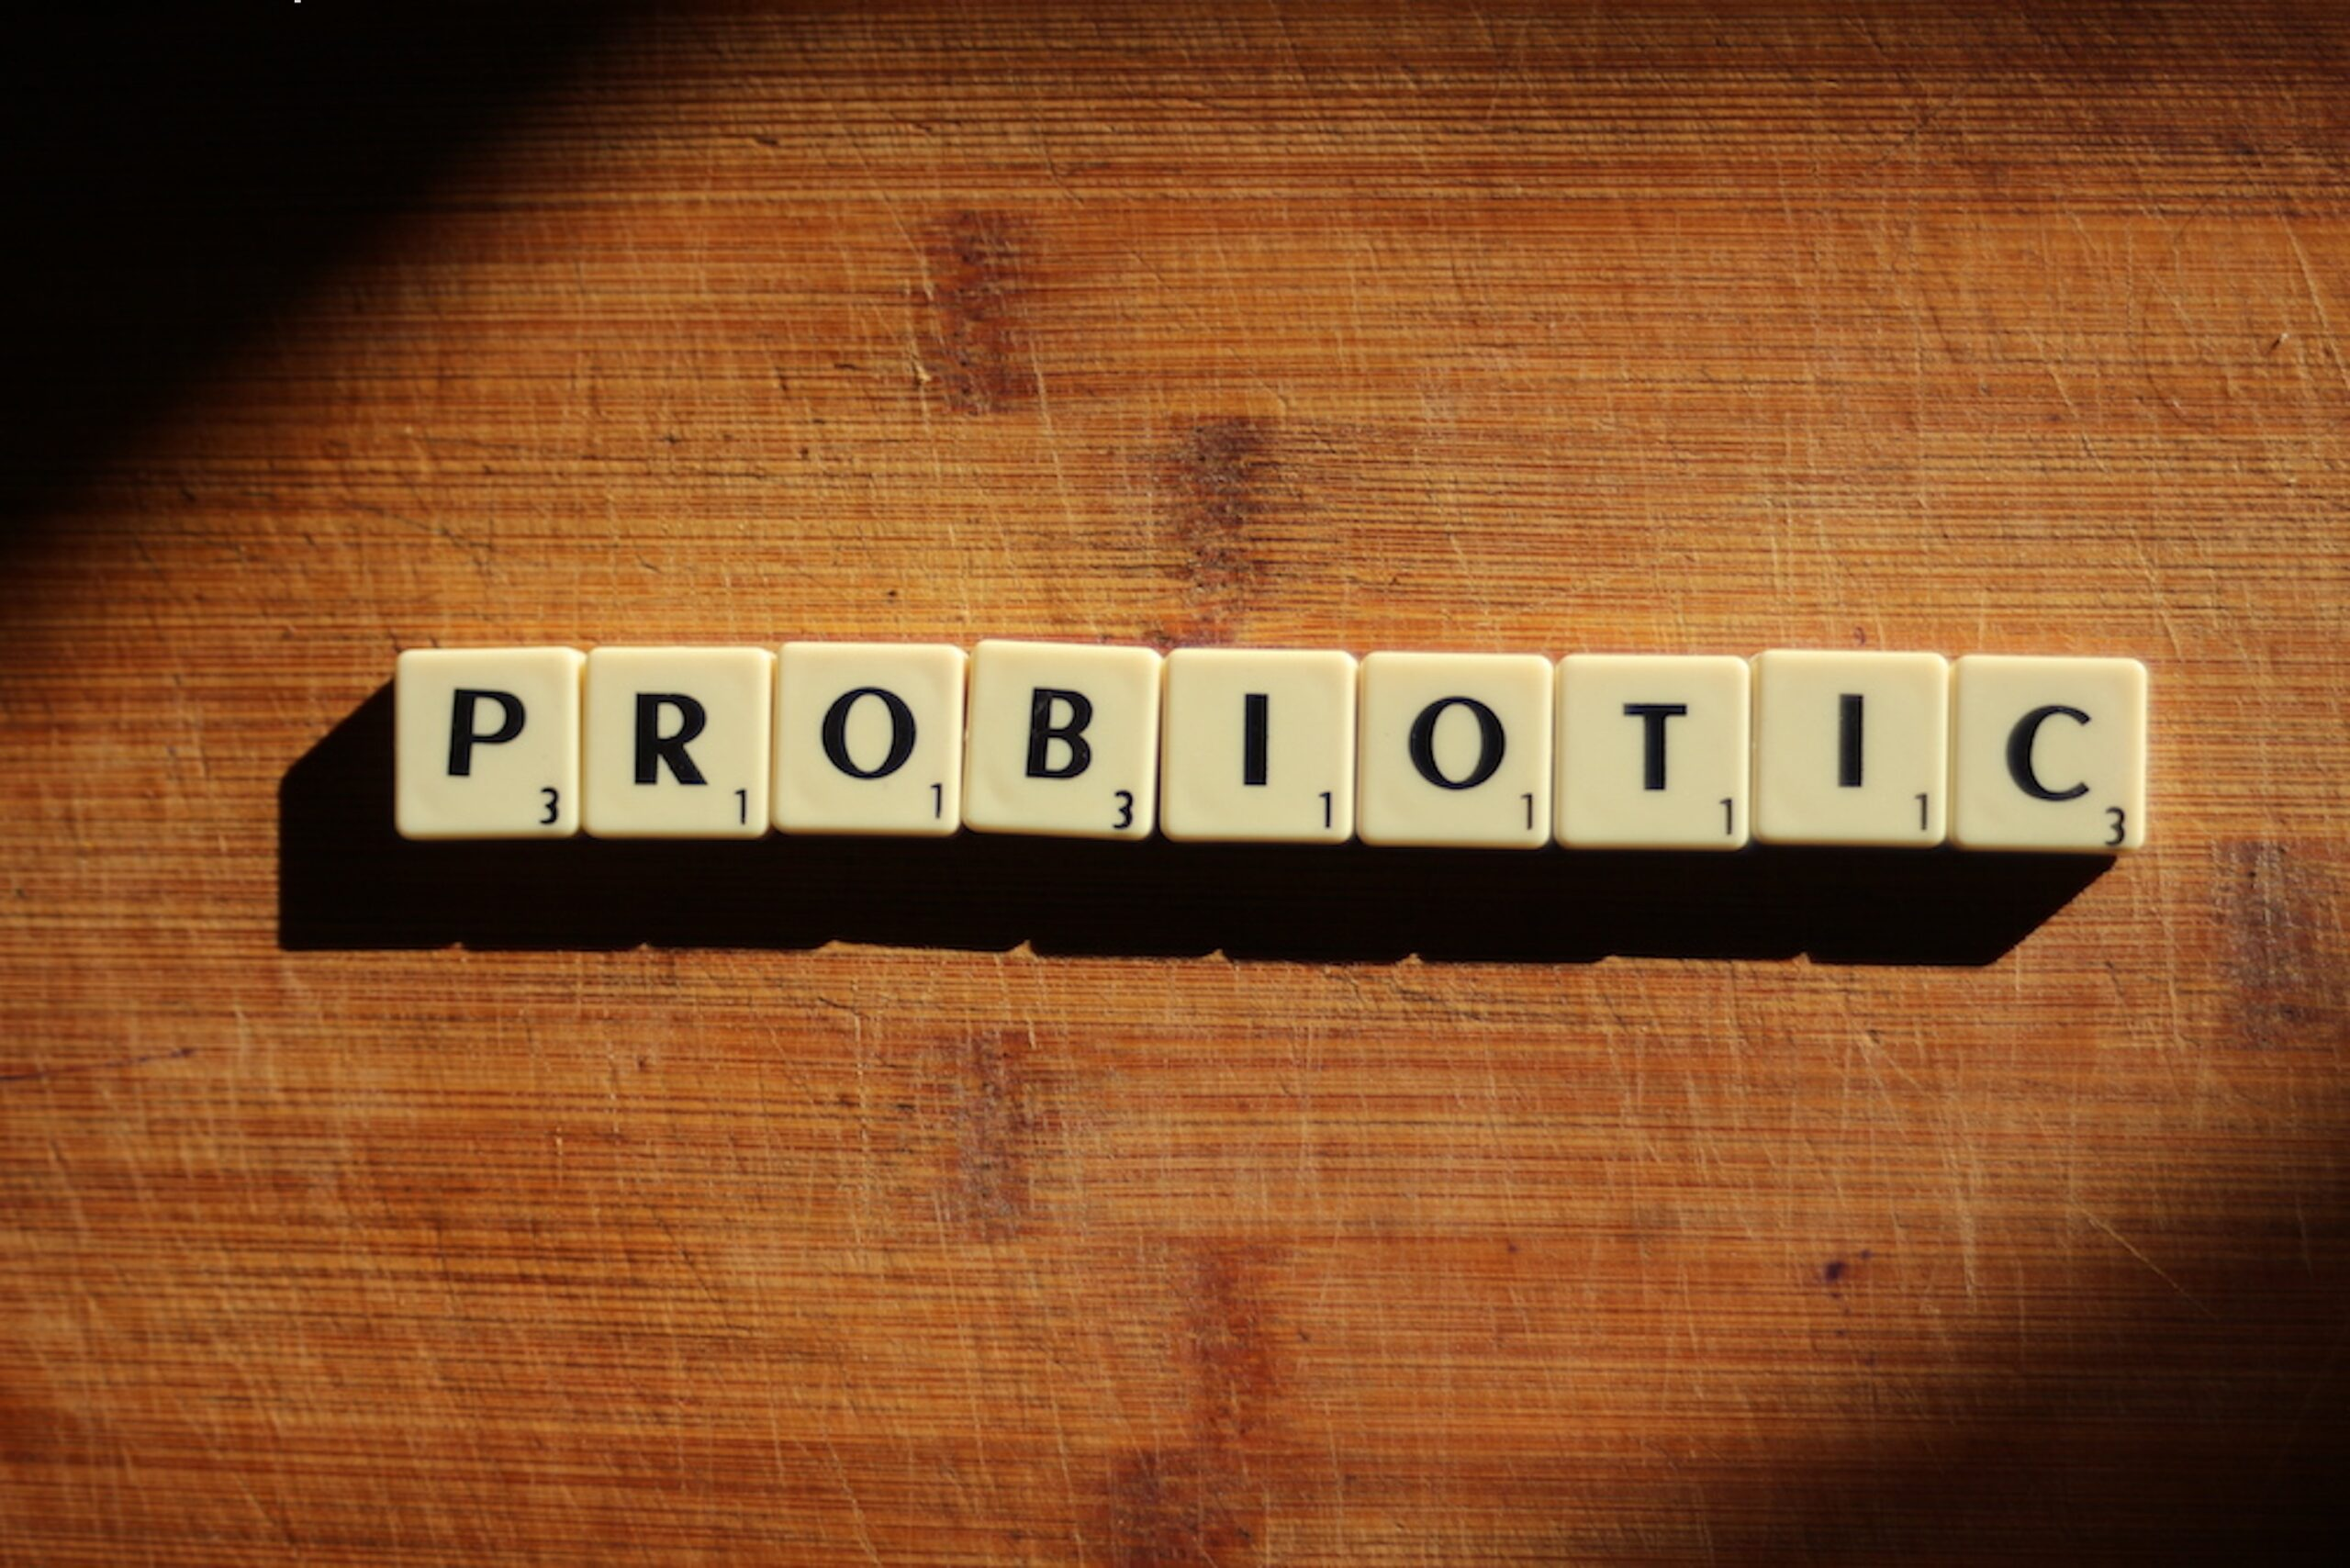 Probiotic Spelled Out